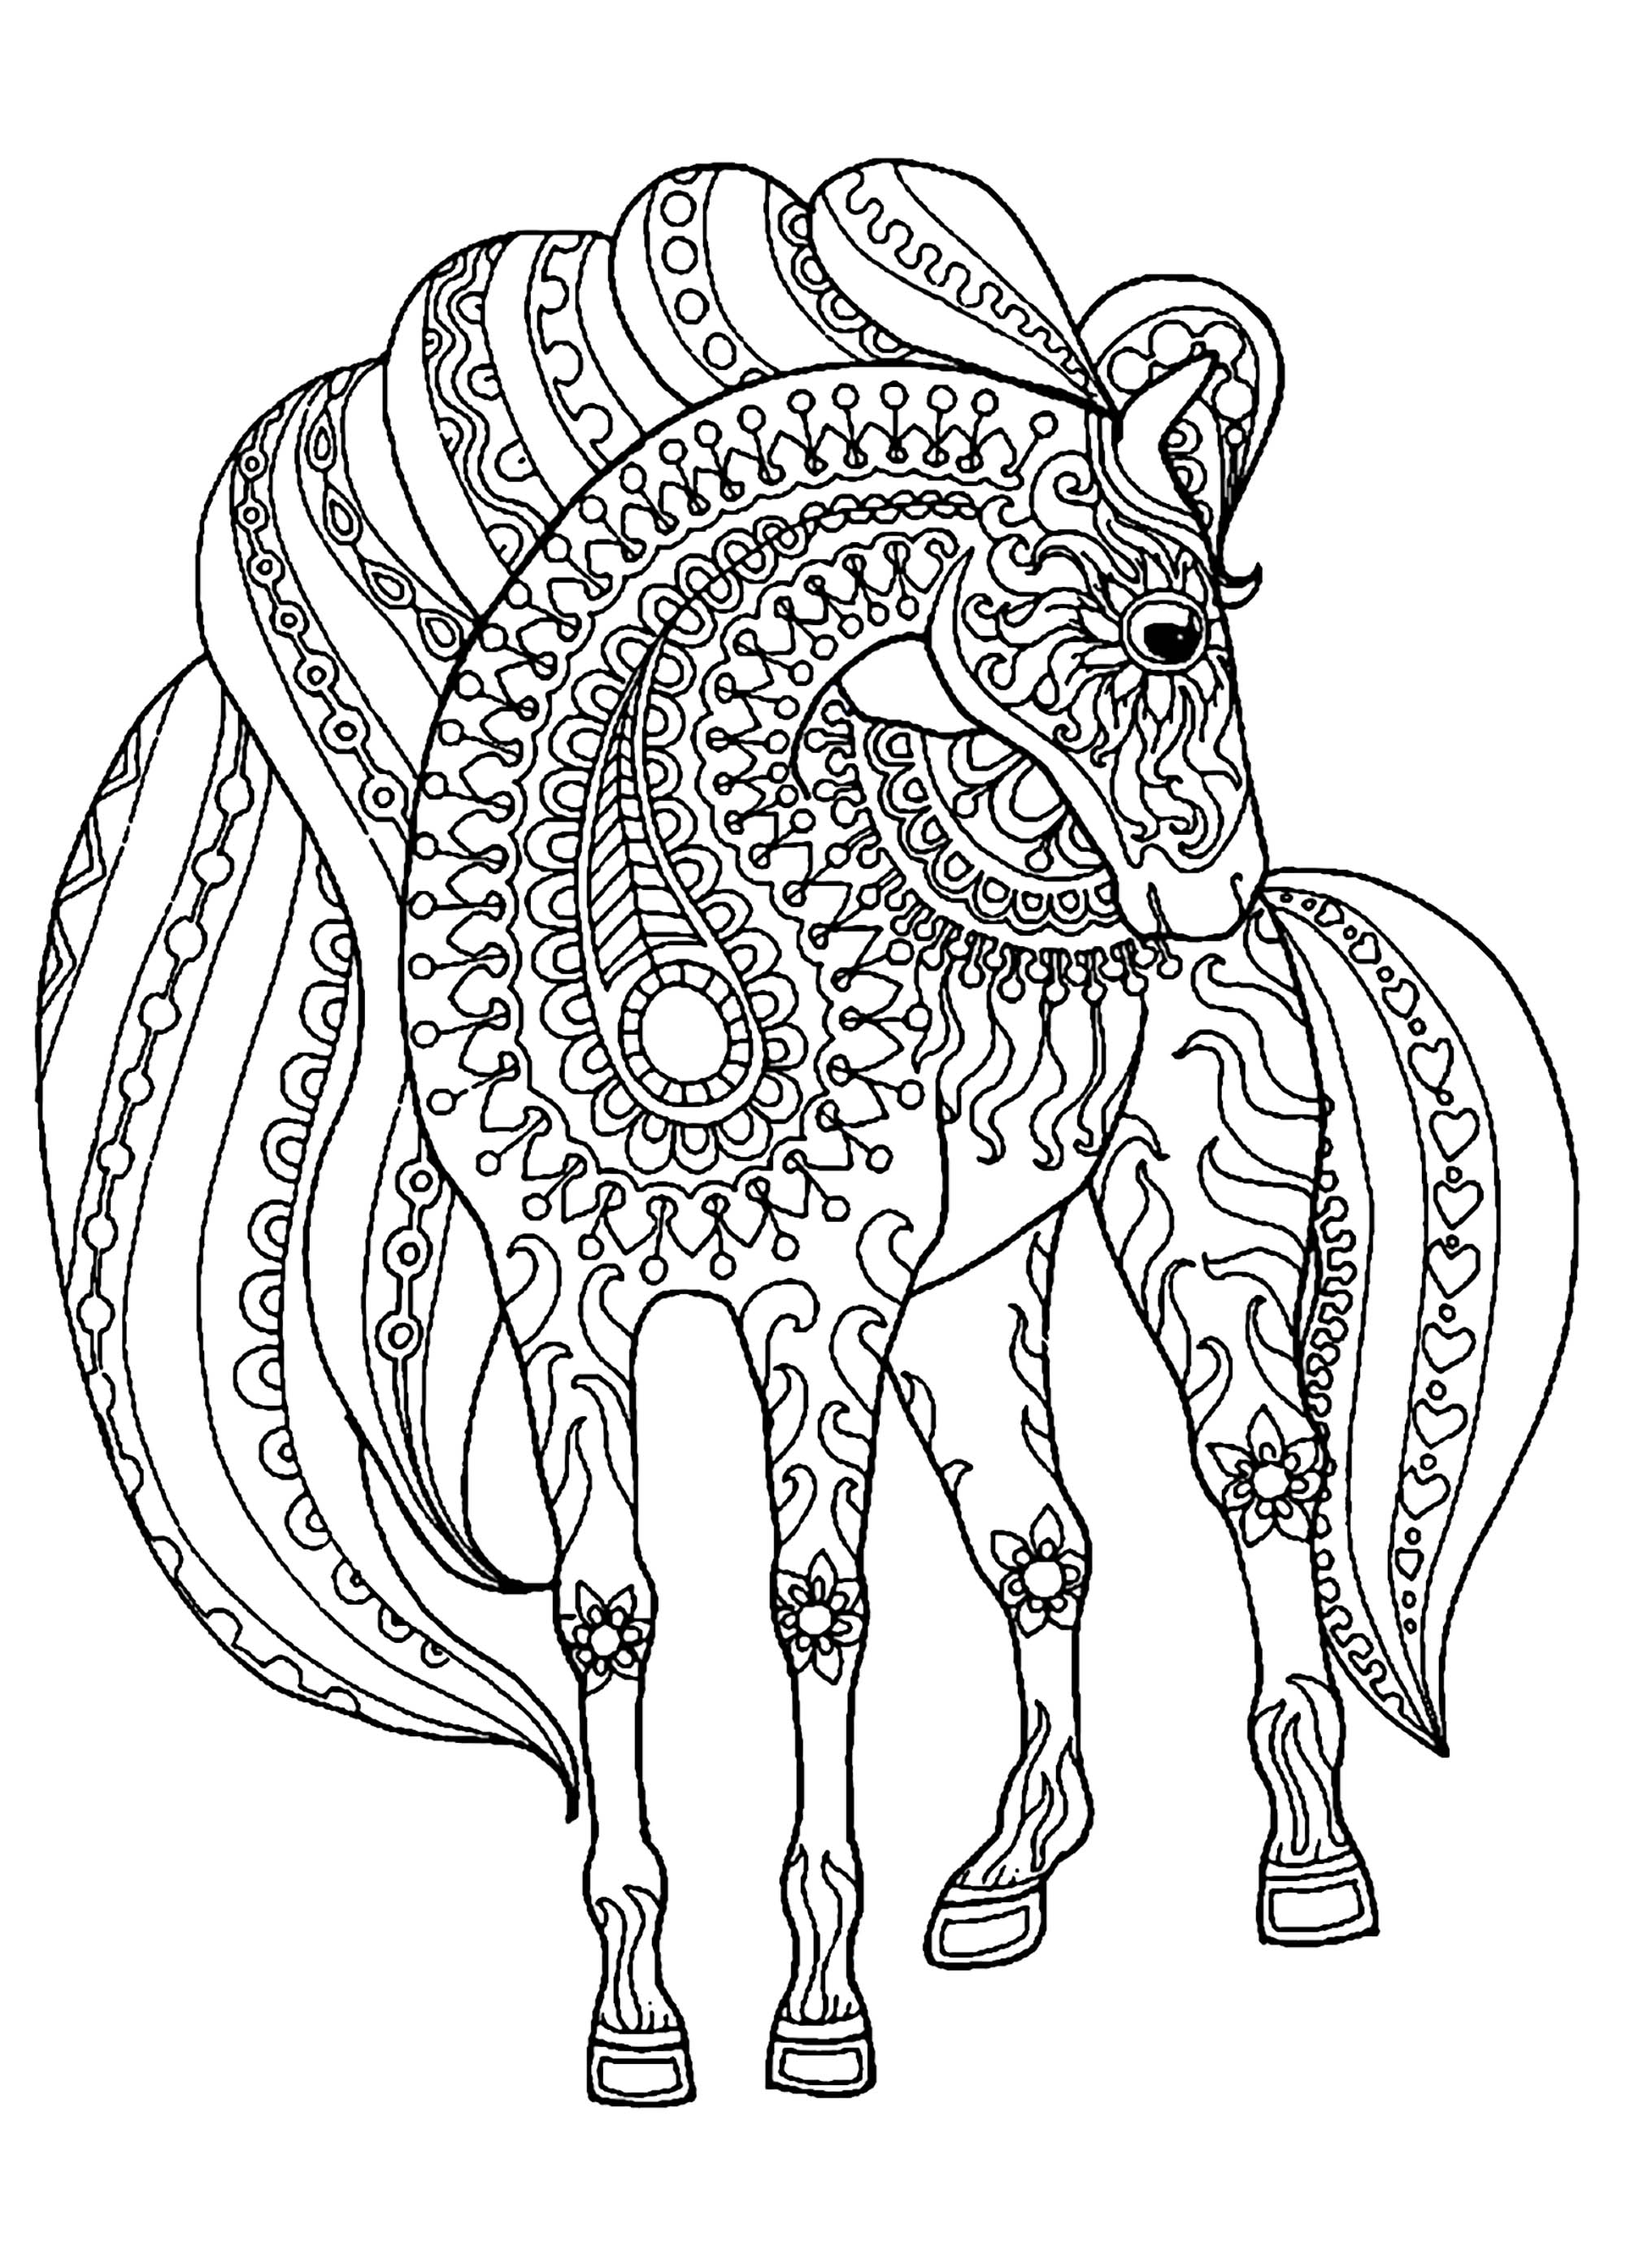 pictures of horses to colour in horse coloring pages hard coloring home to horses in of pictures colour